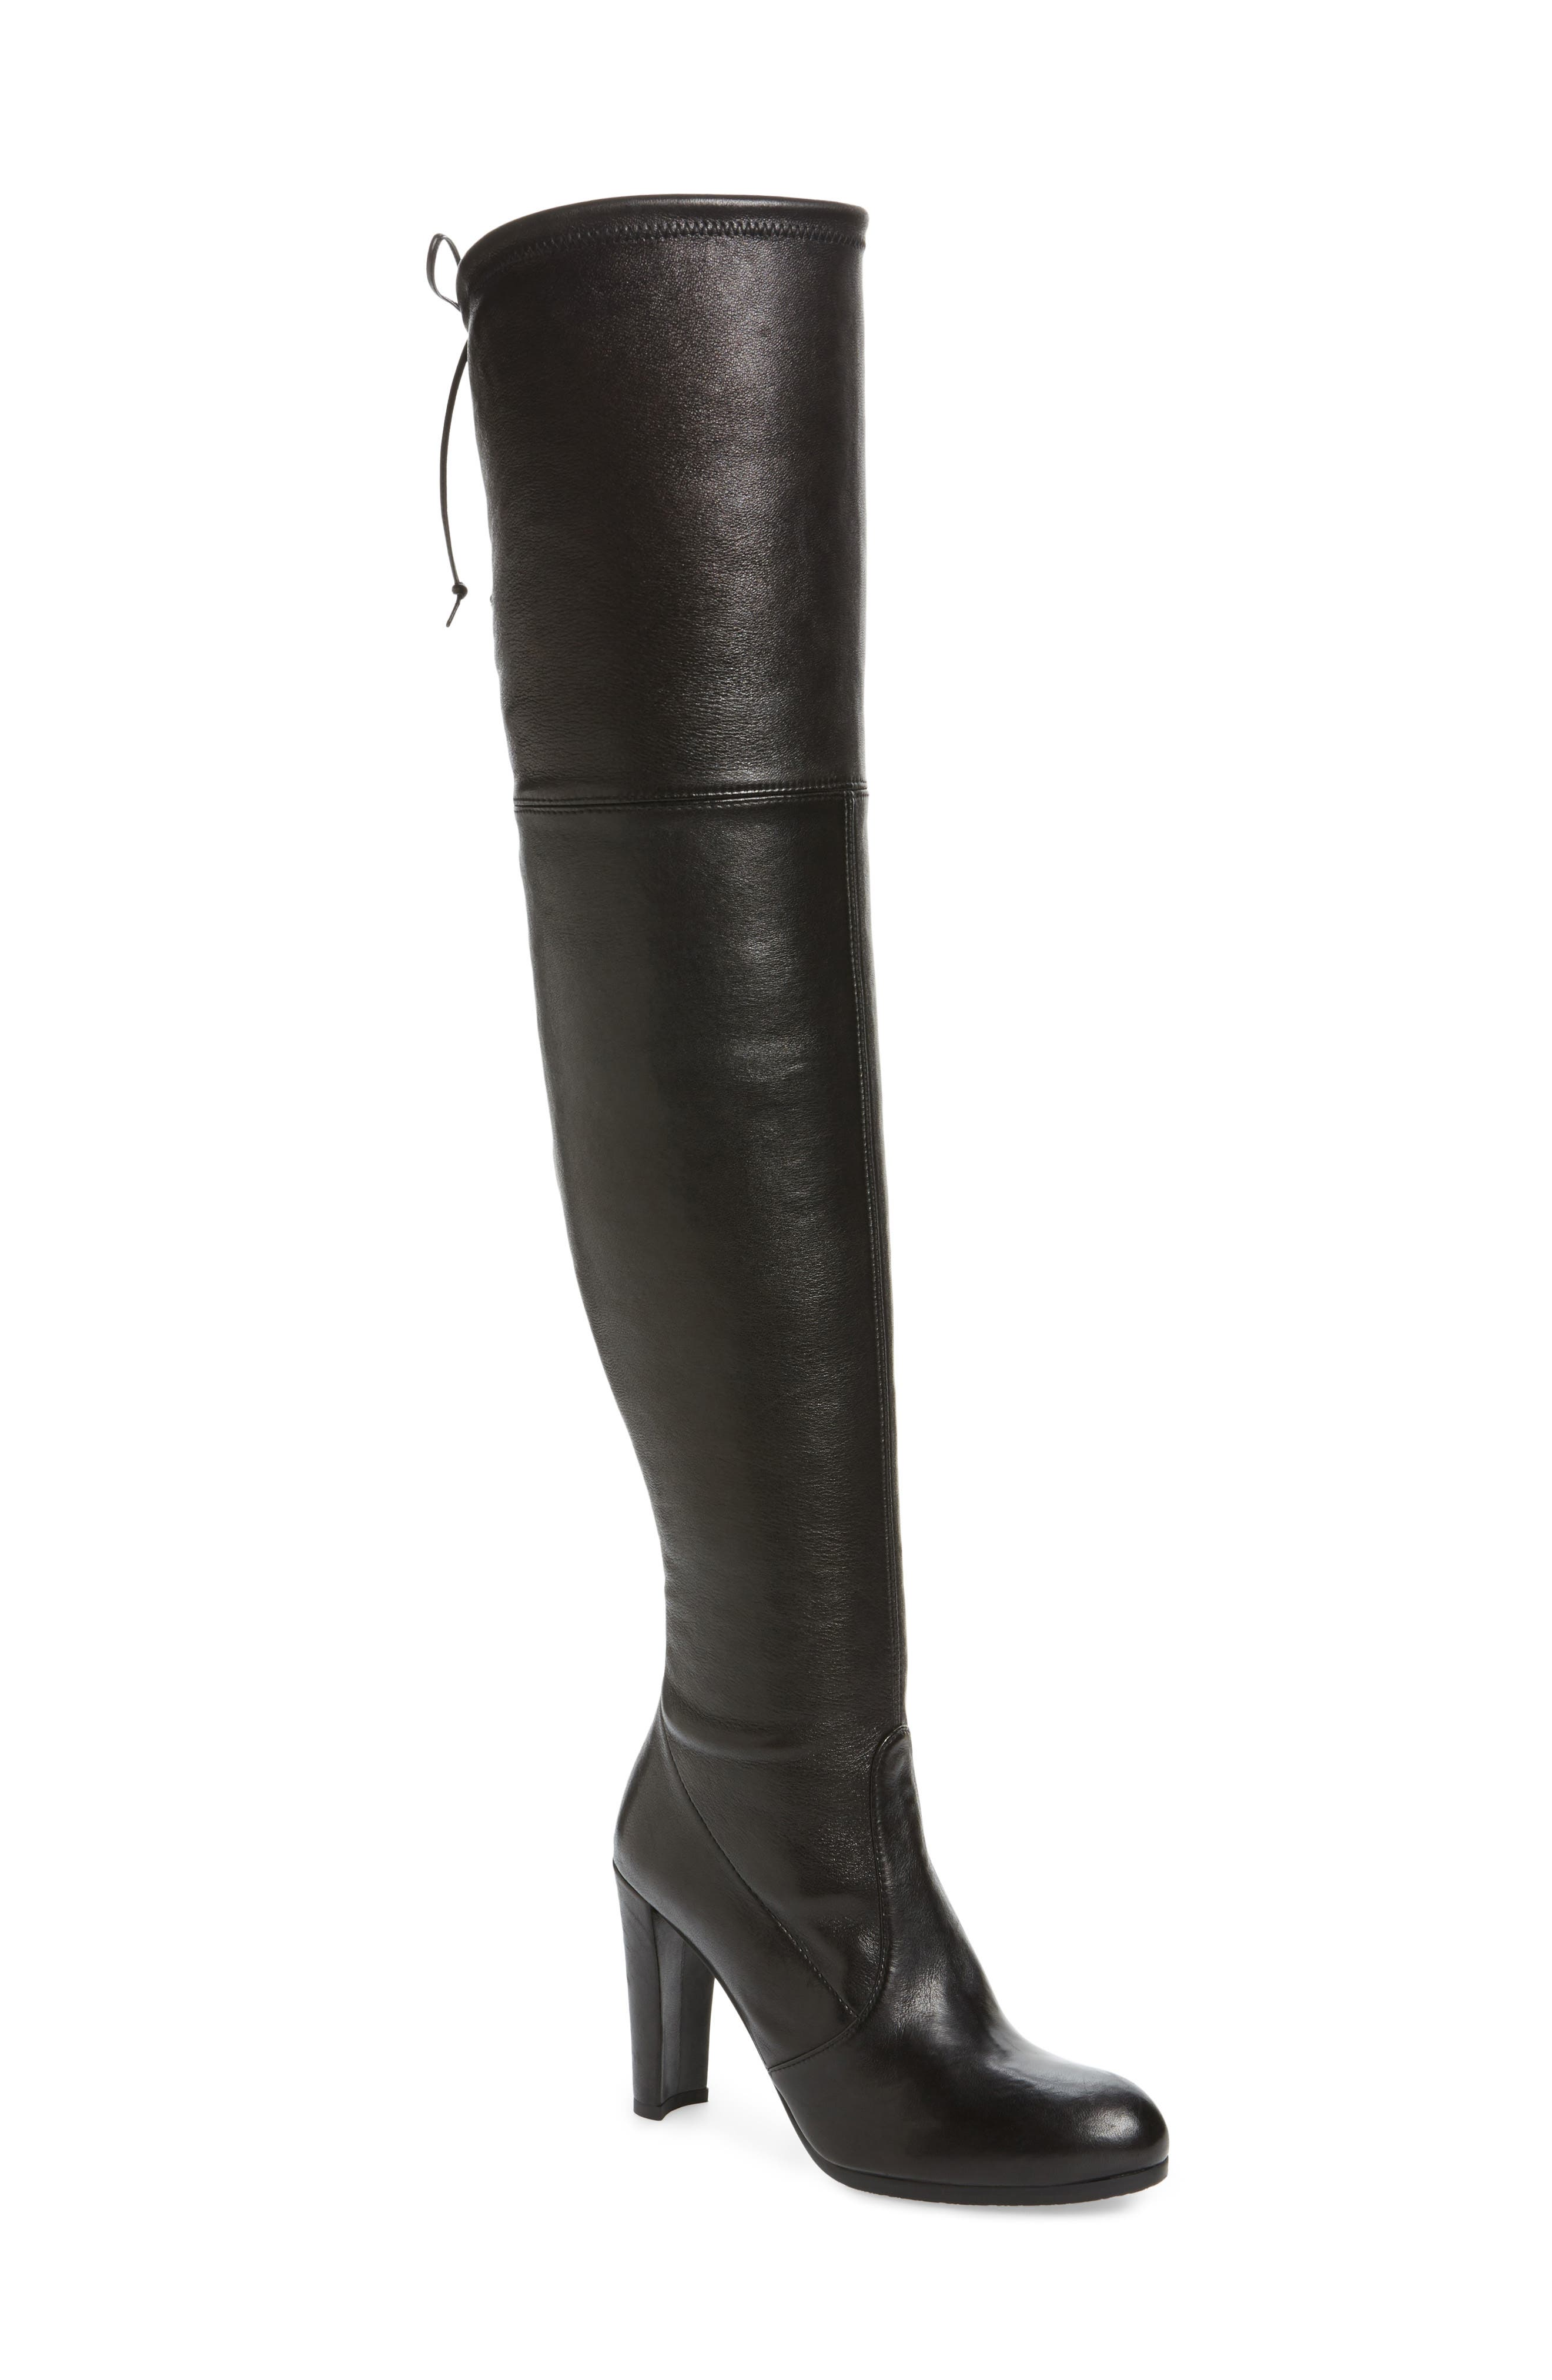 Hiline Over the Knee Boot,                             Main thumbnail 1, color,                             Black Nappa